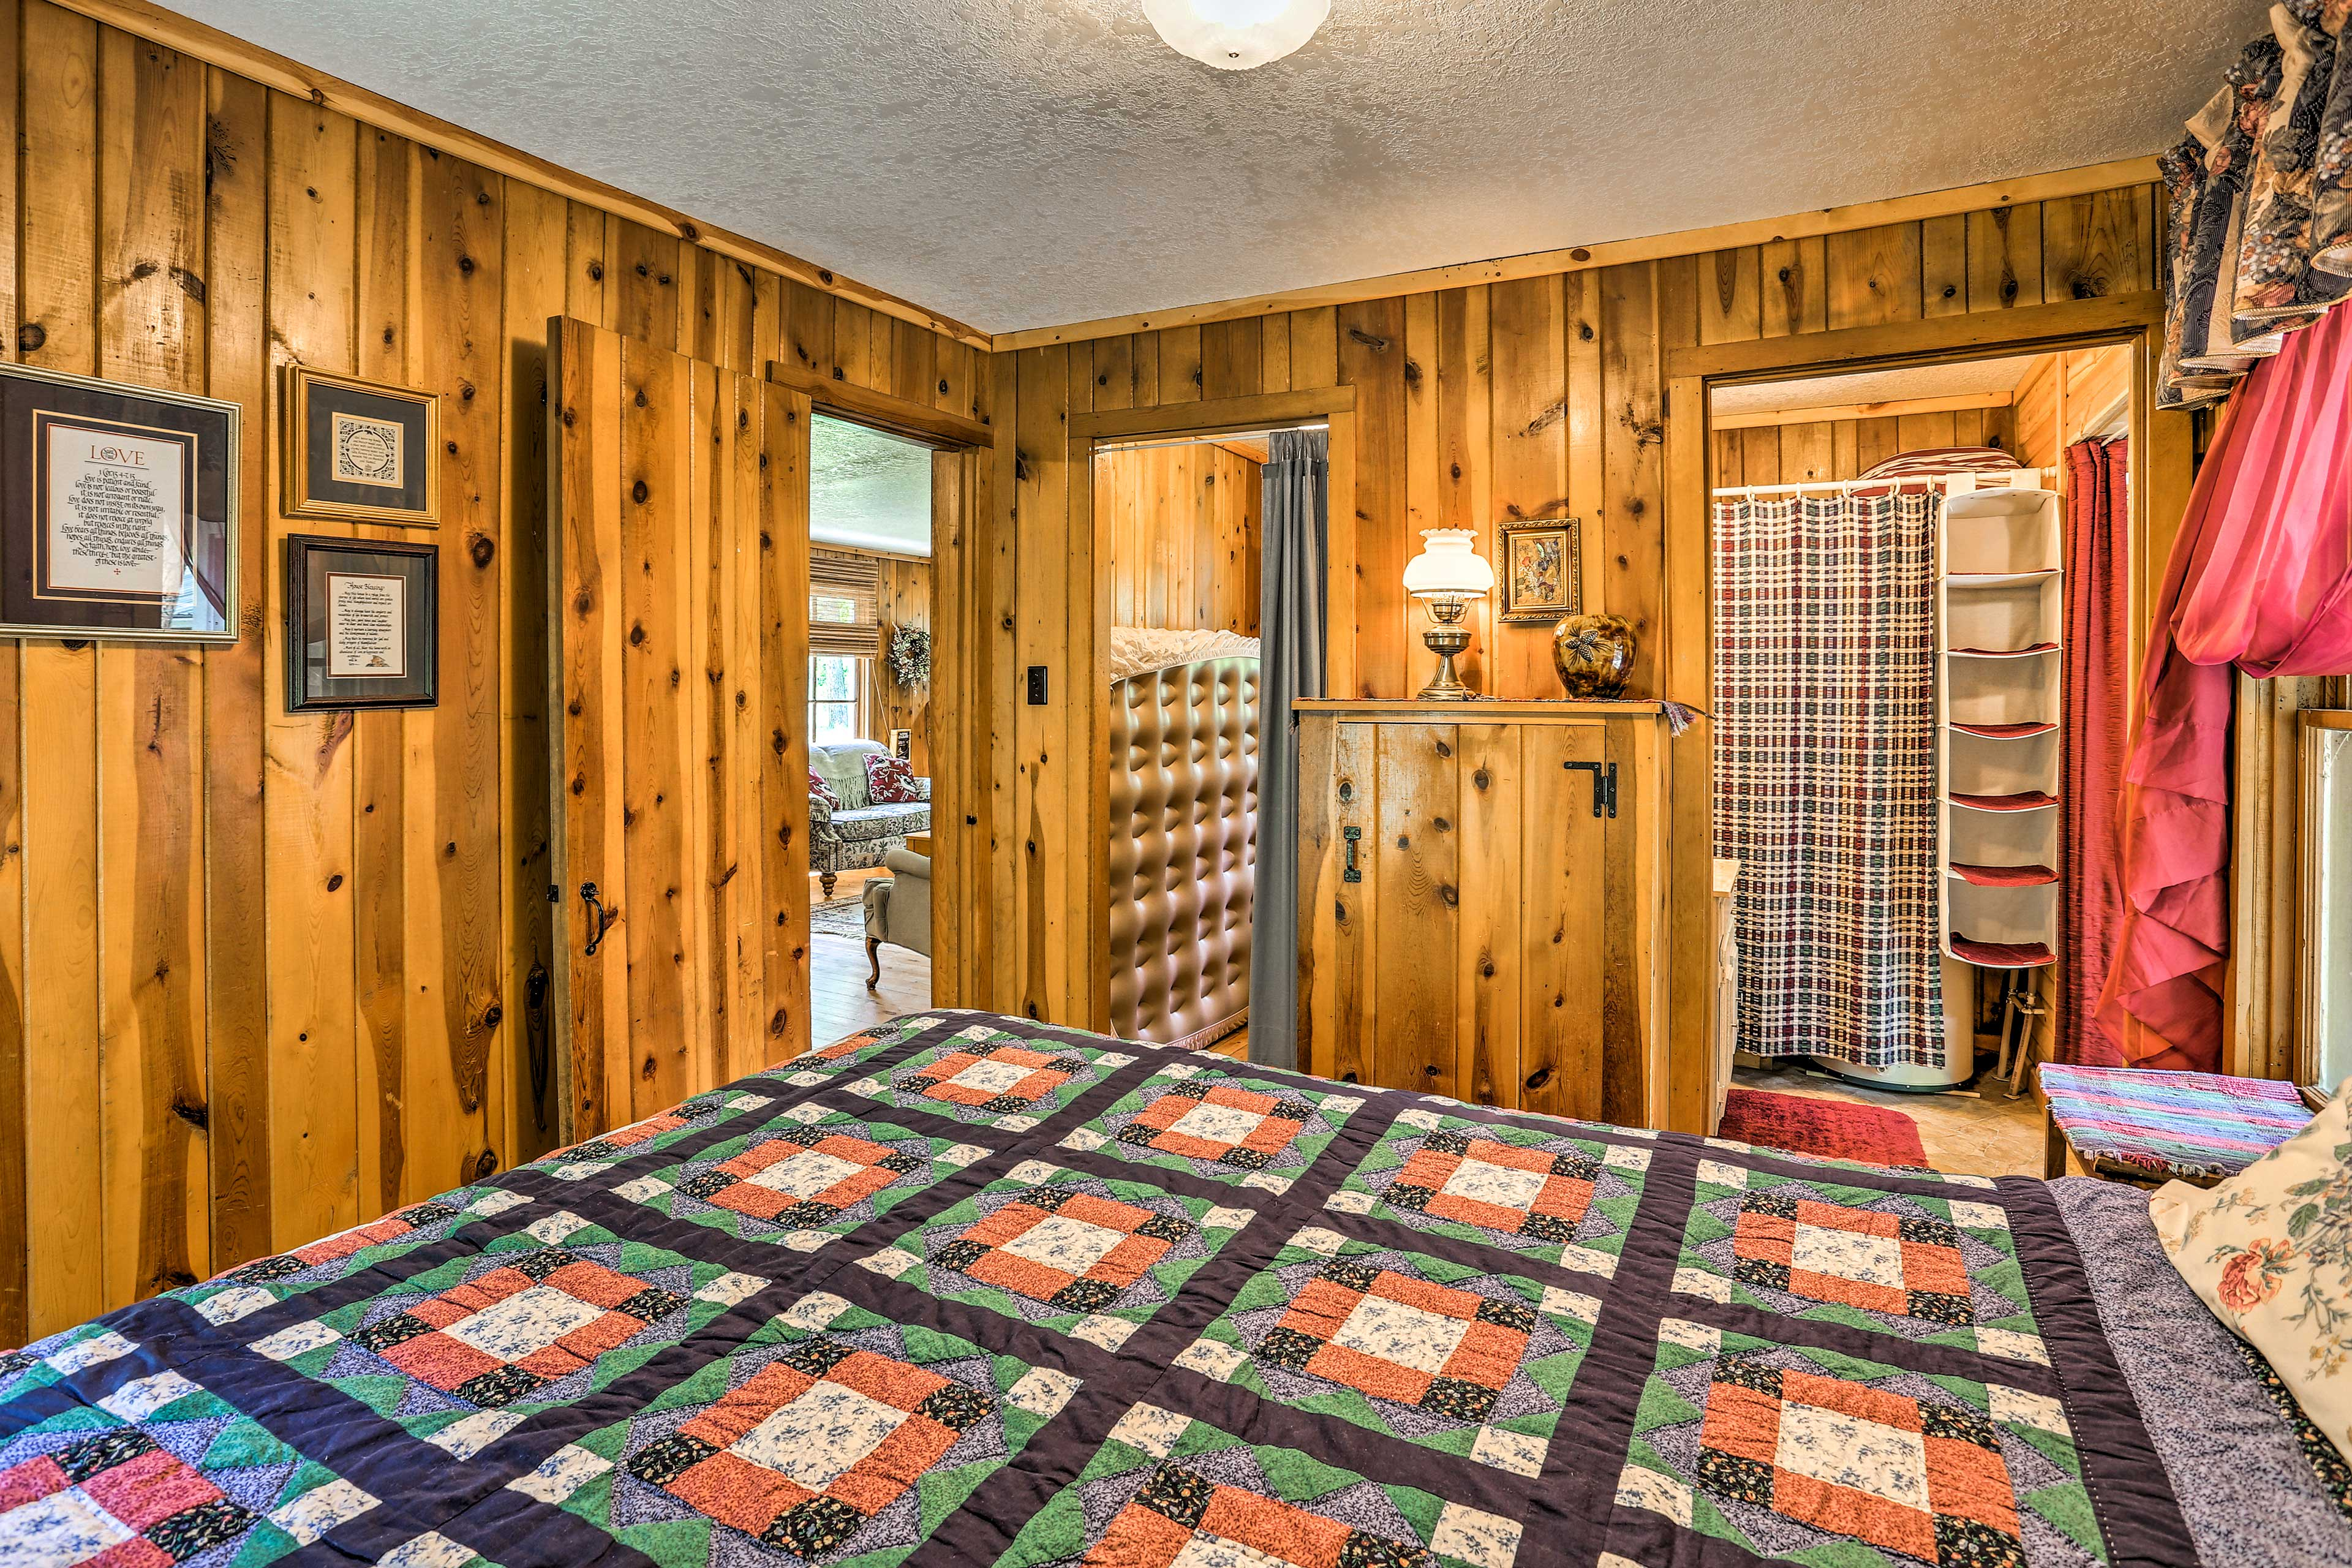 You'll feel well-rested after a night on this queen bed.